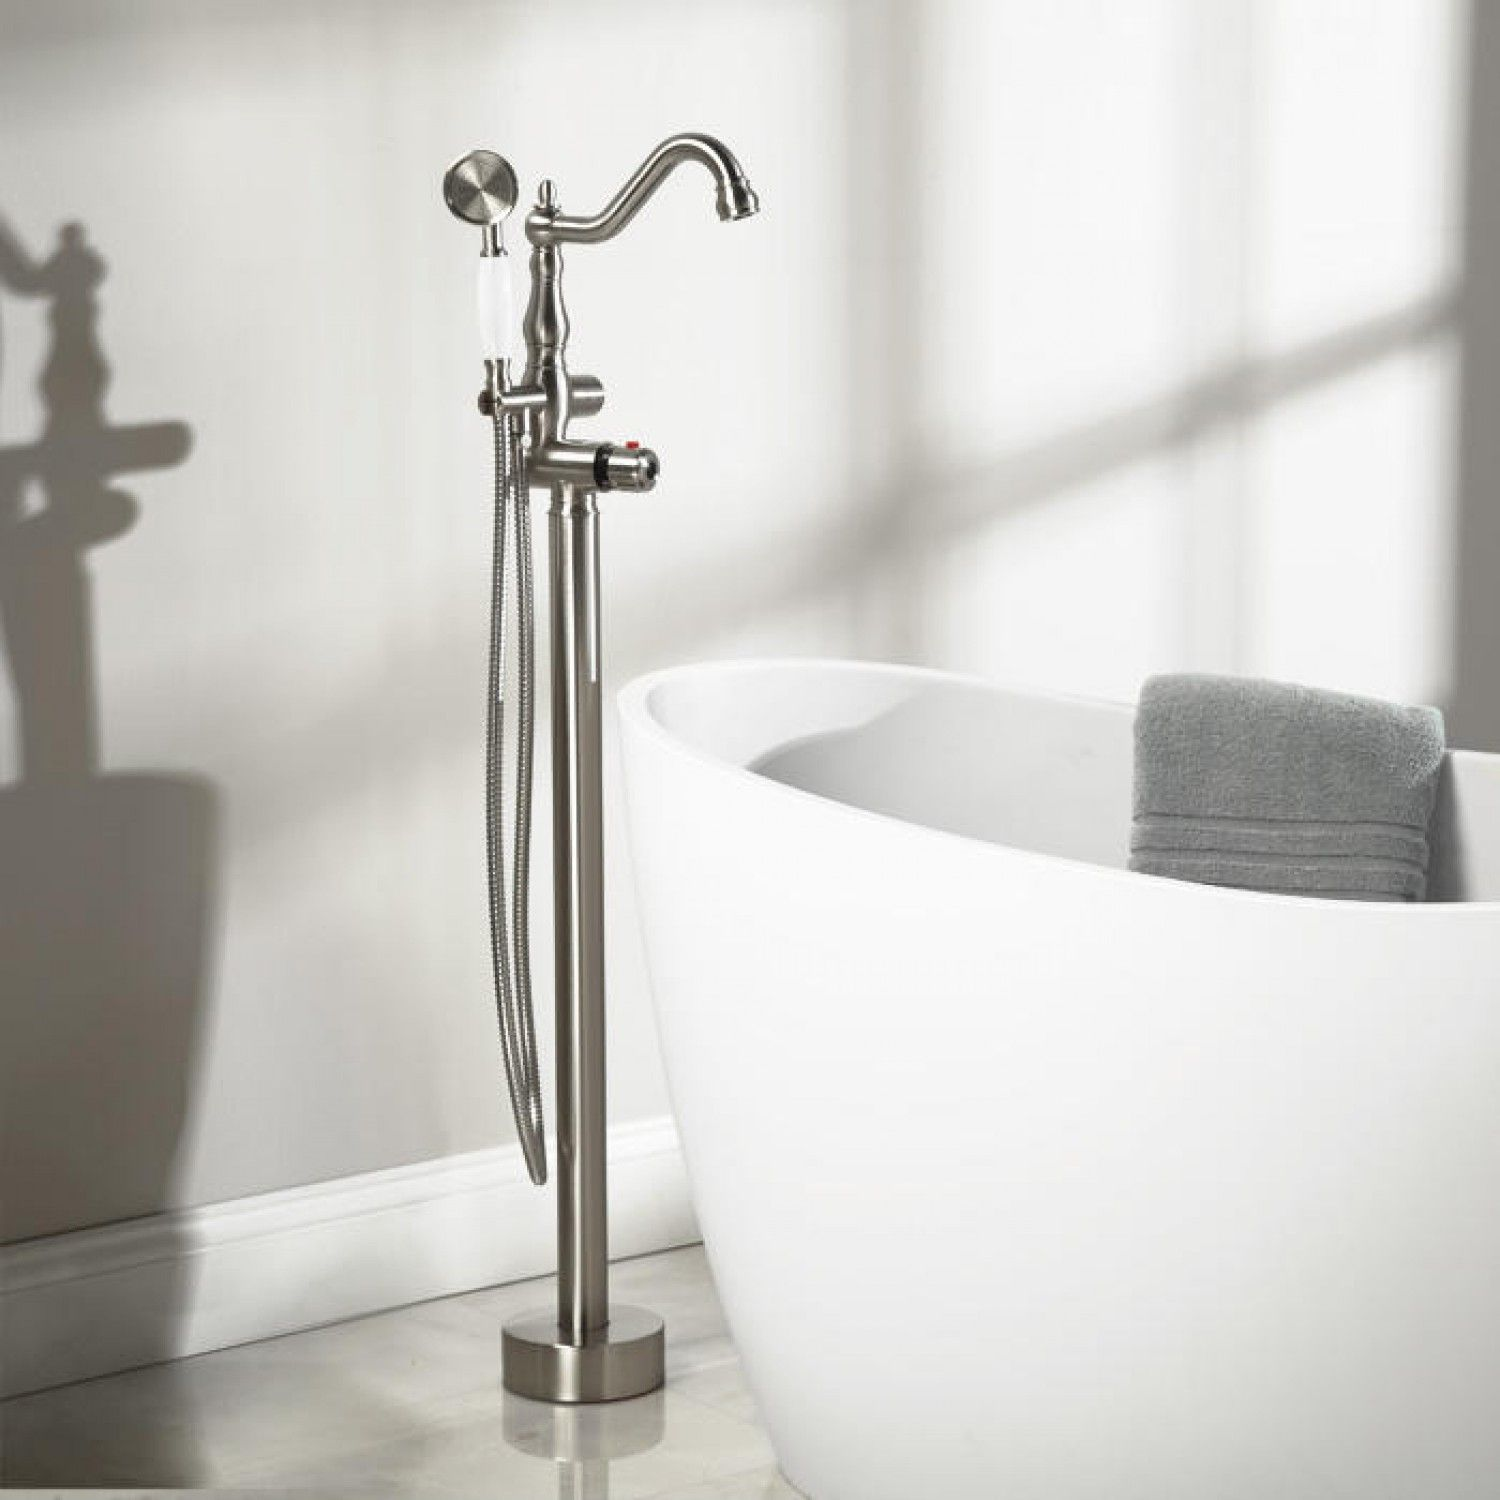 Delightful Keswick Freestanding Thermostatic Tub Faucet And Hand Shower